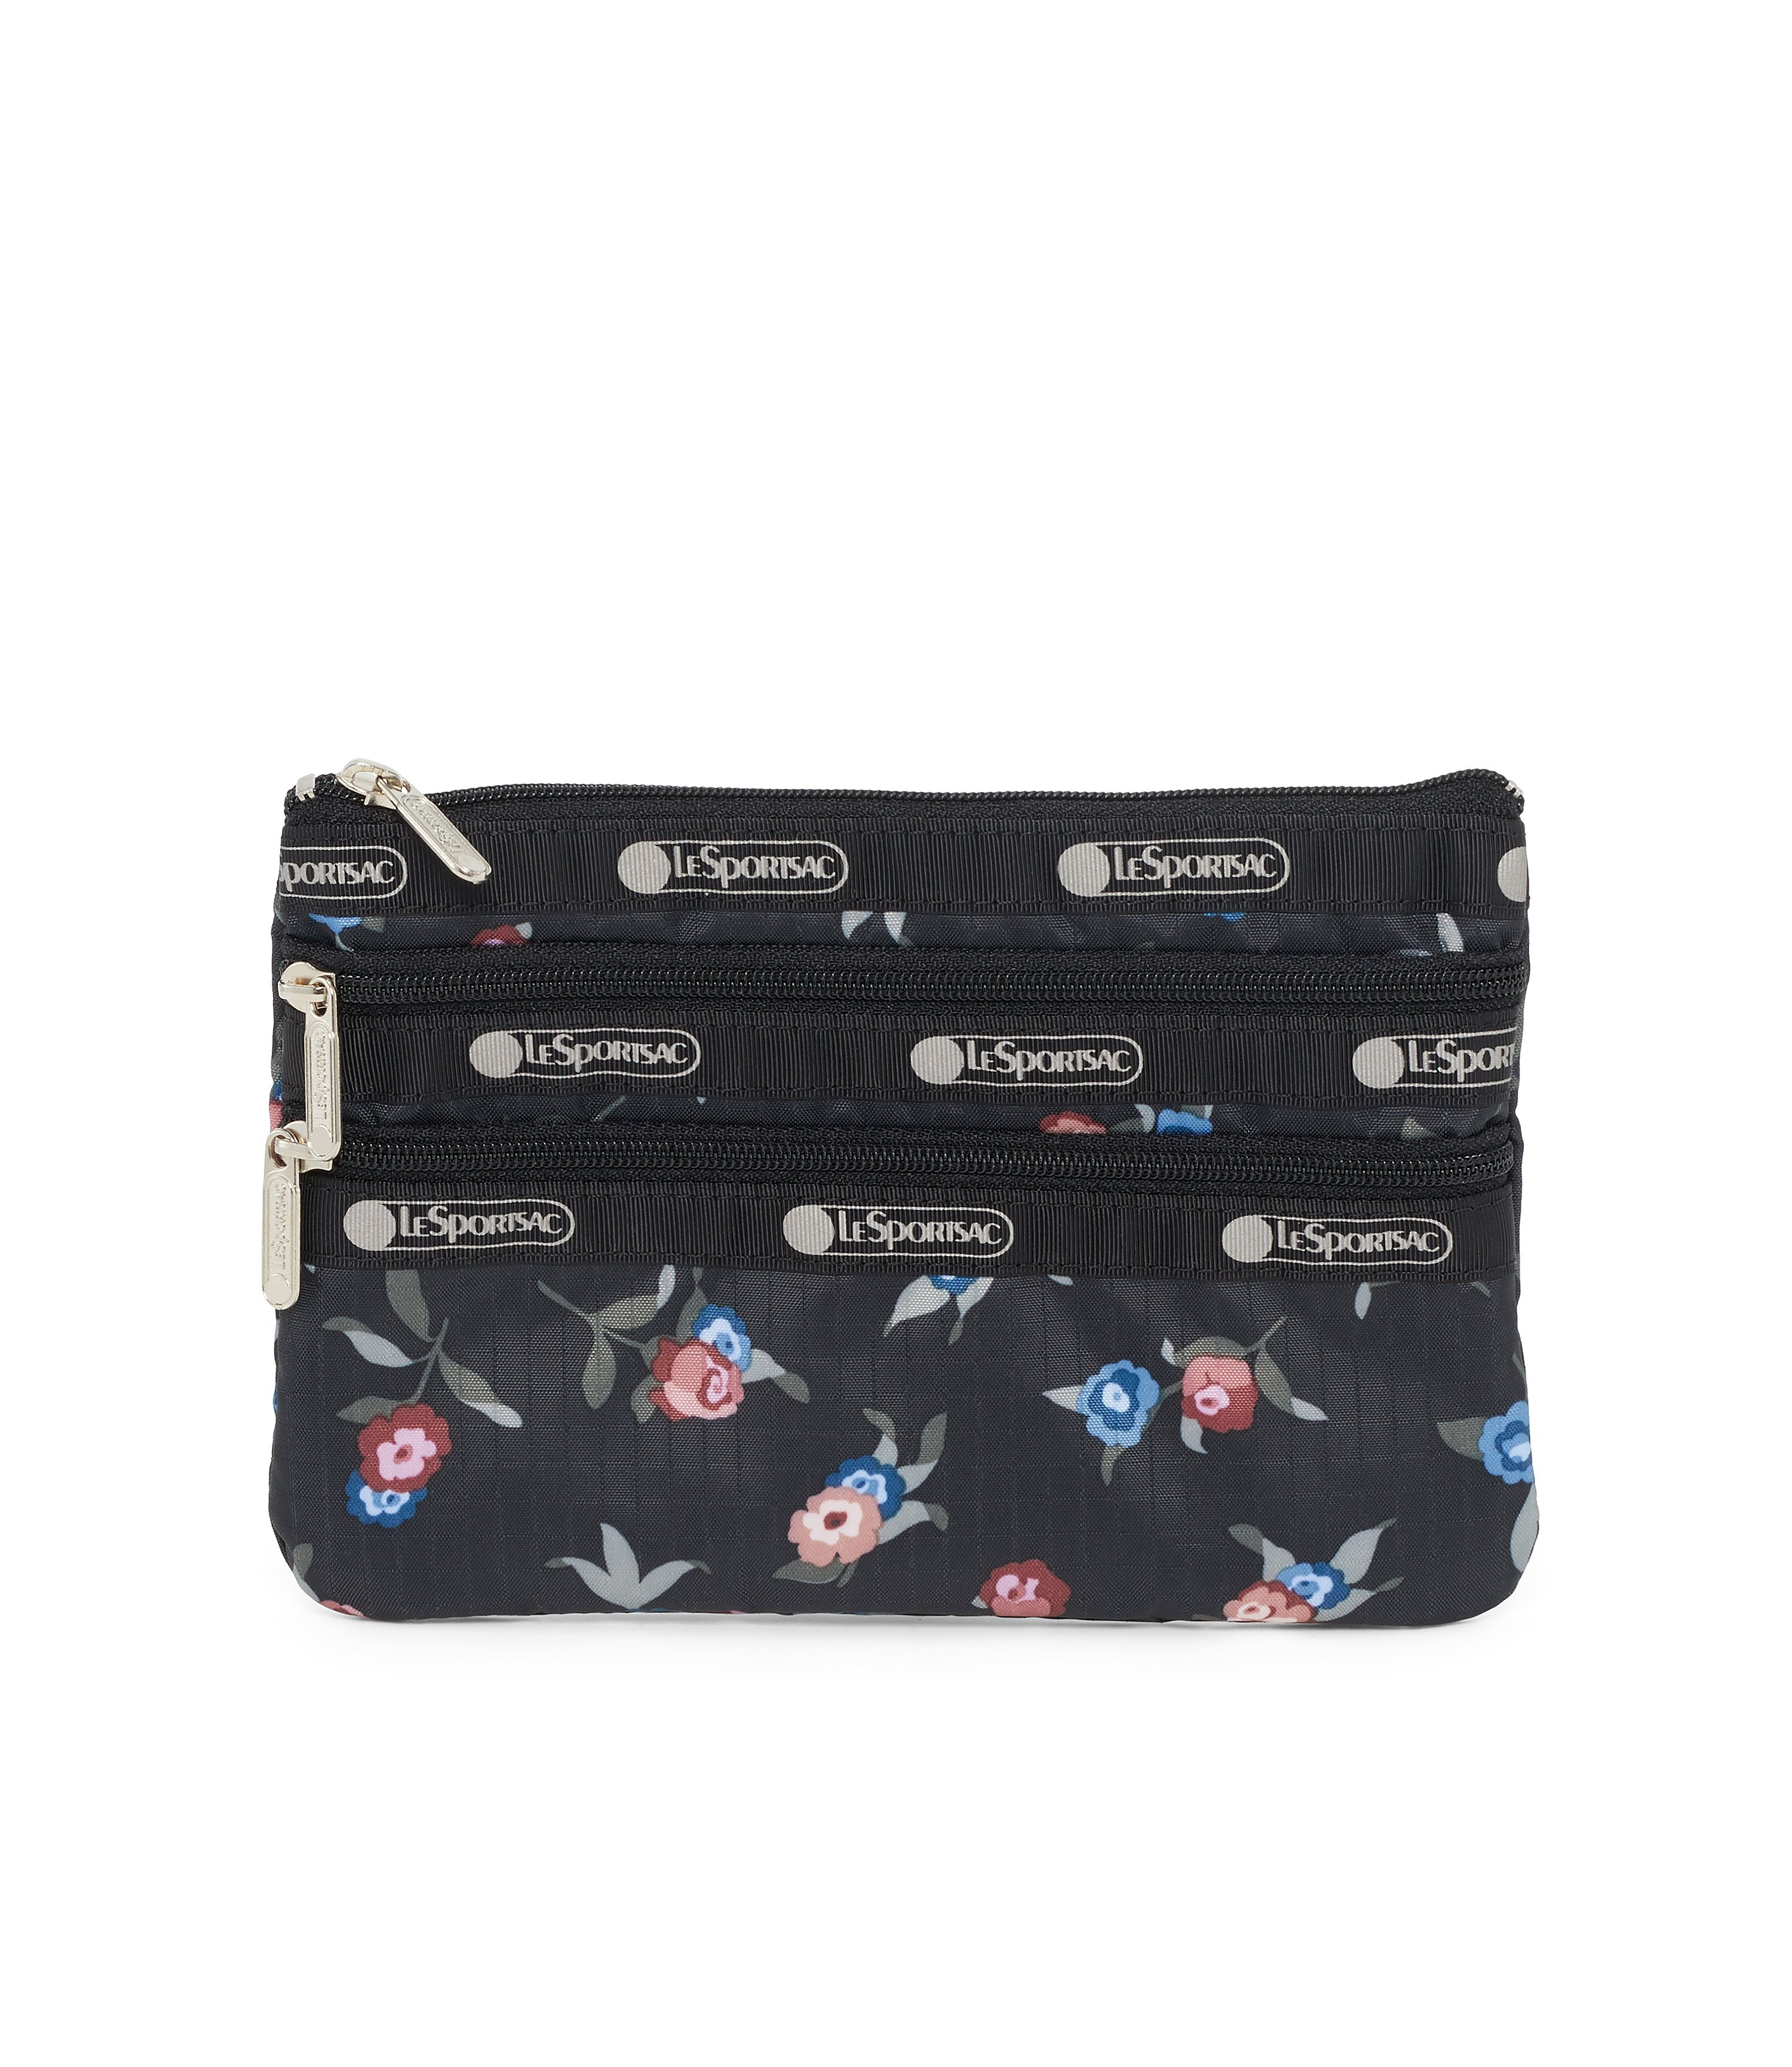 3-Zip Cosmetic, Accessories and Cosmetic Bag, LeSportsac, Zinnia Fields Black print